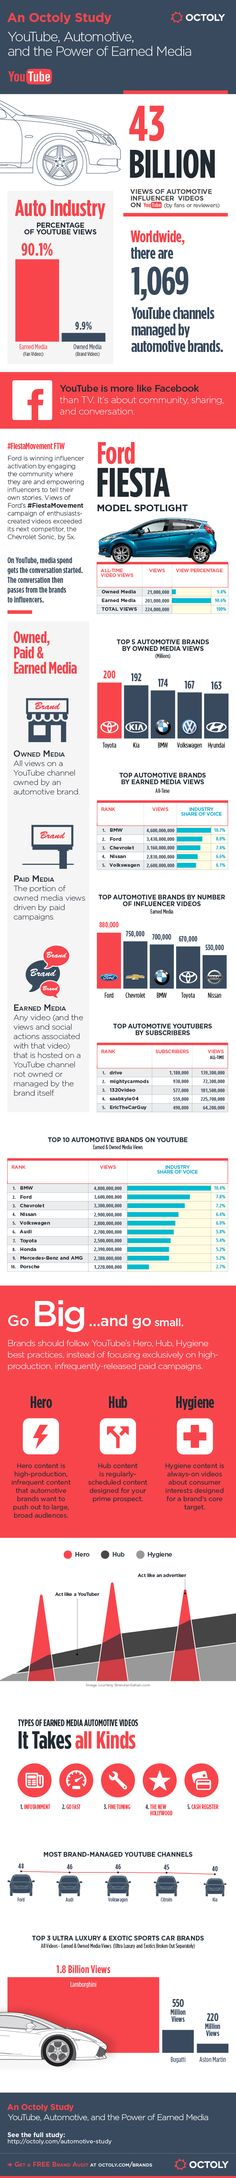 YouTube & The Automotive Industry: BMW Laps the Competition with 4.8 Billion Views [Infographic]